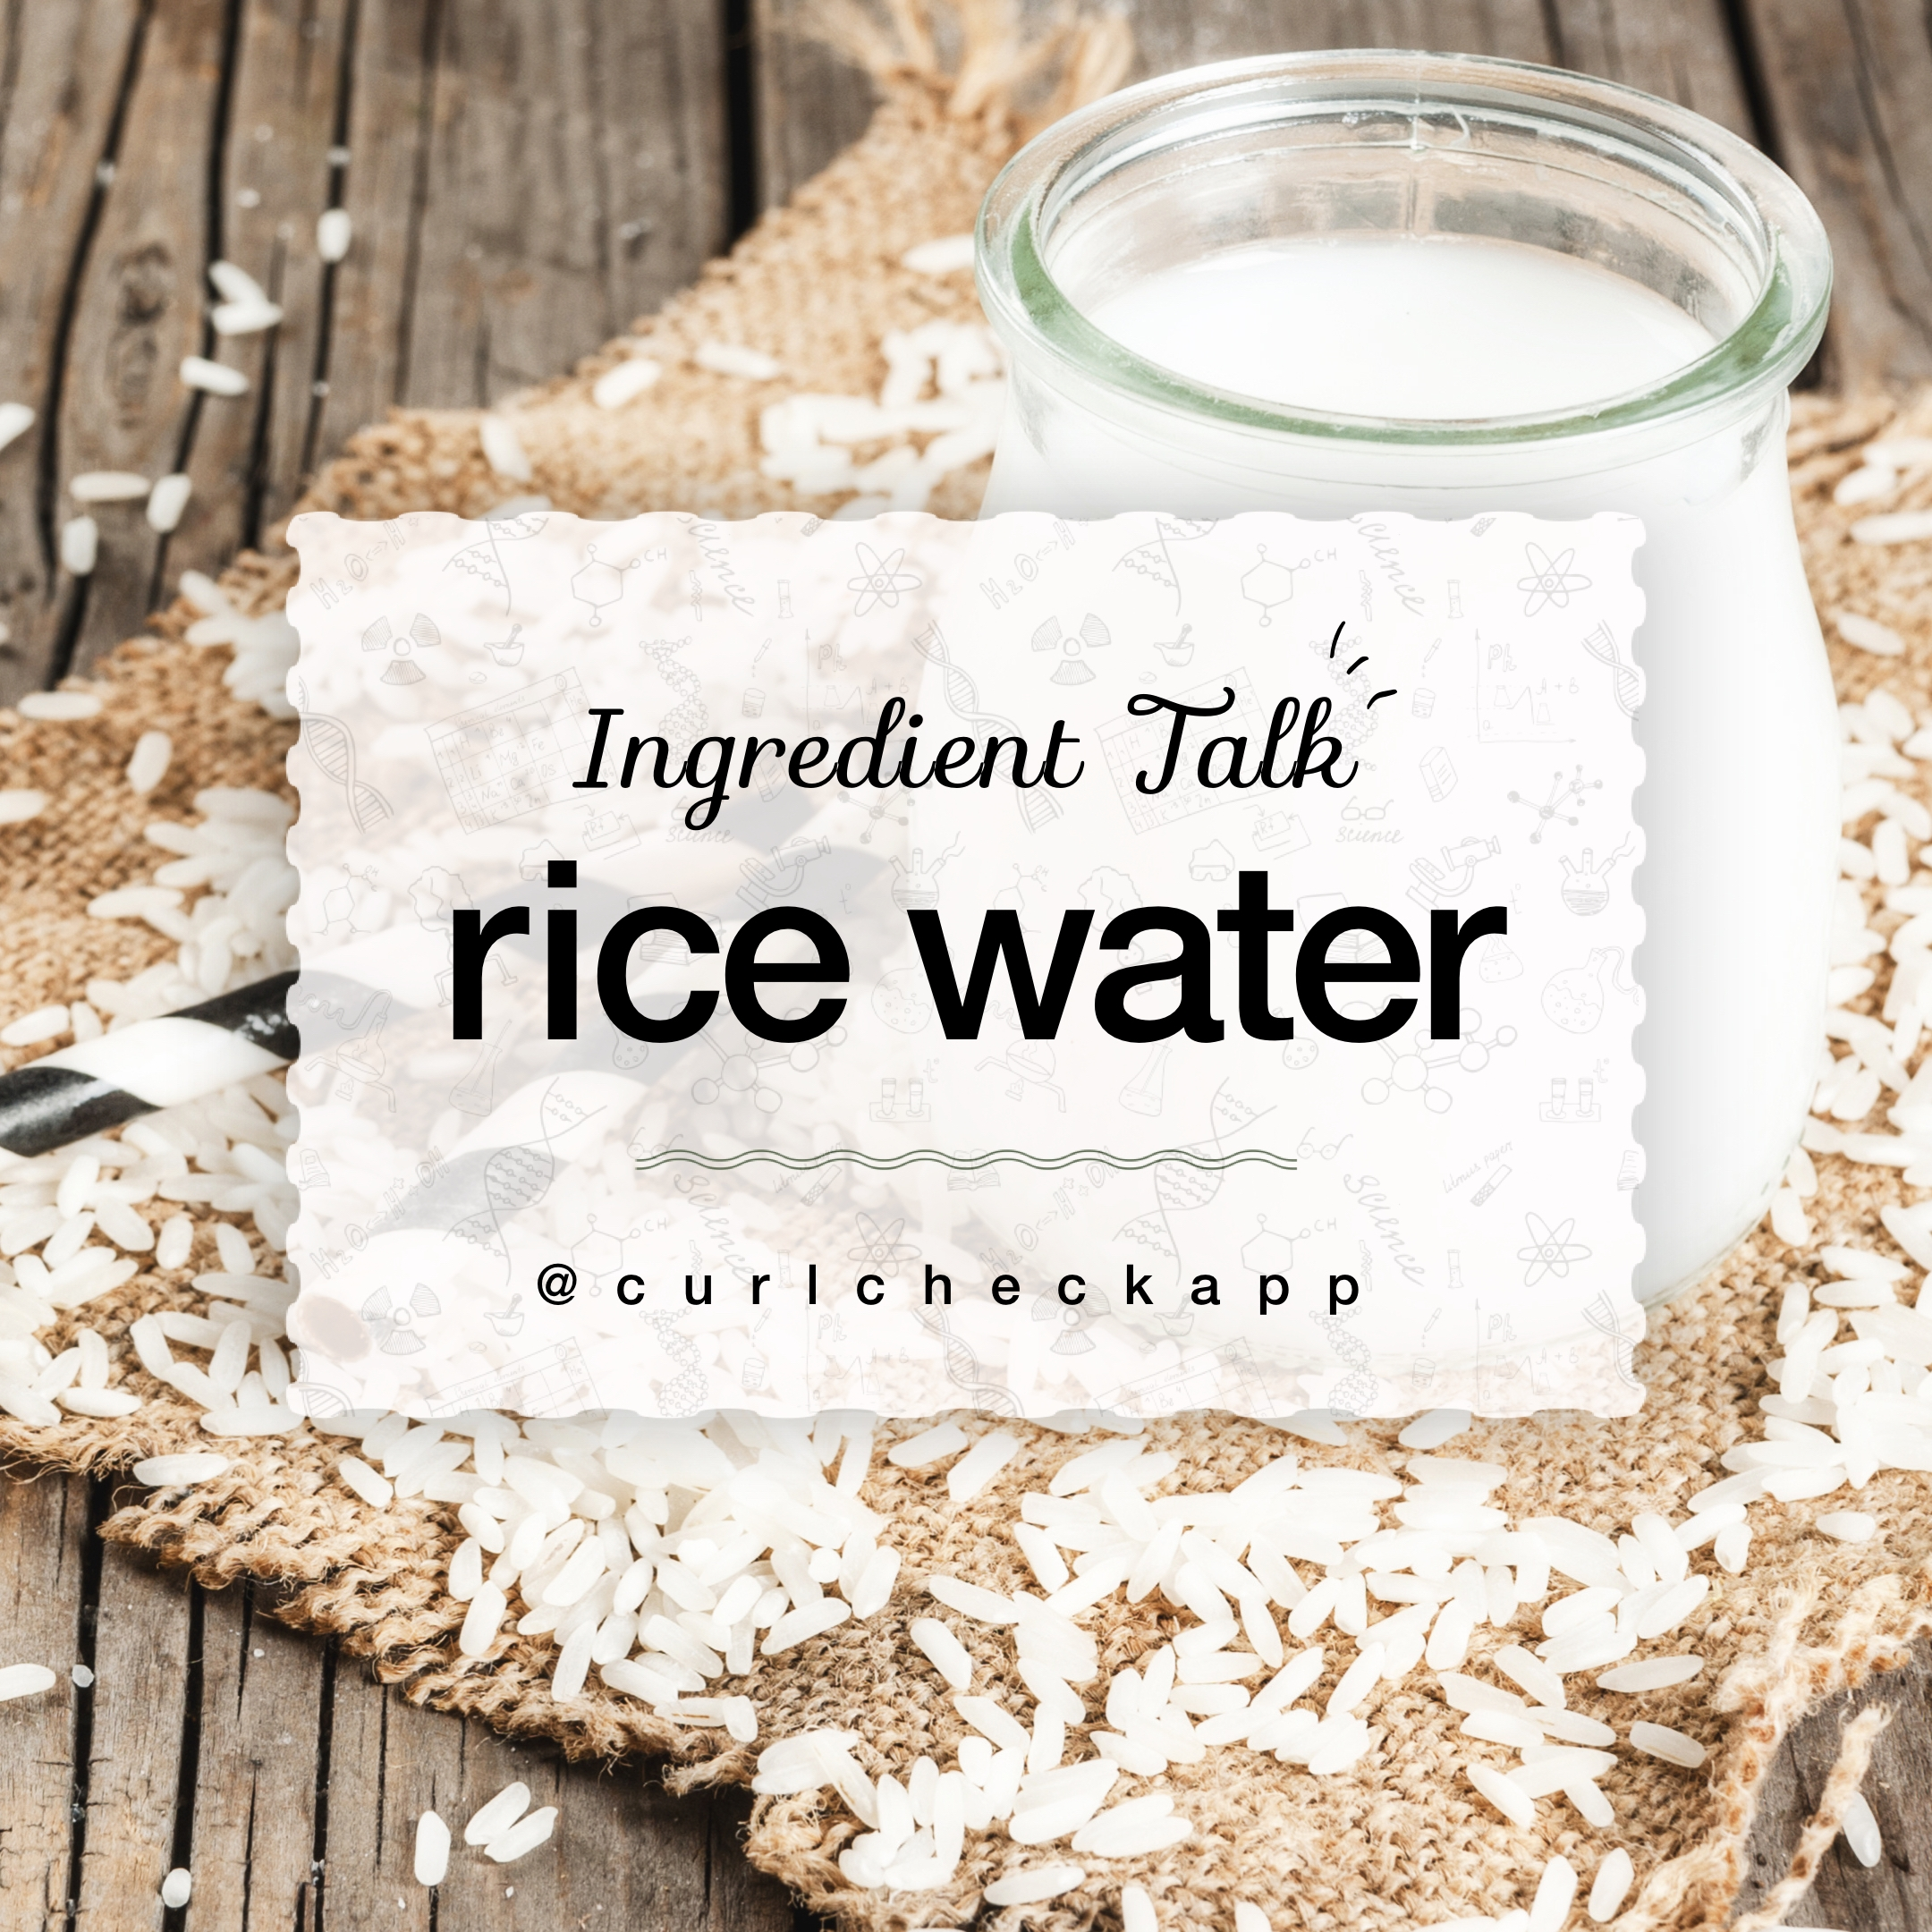 Rice Water: Myth or Miracle